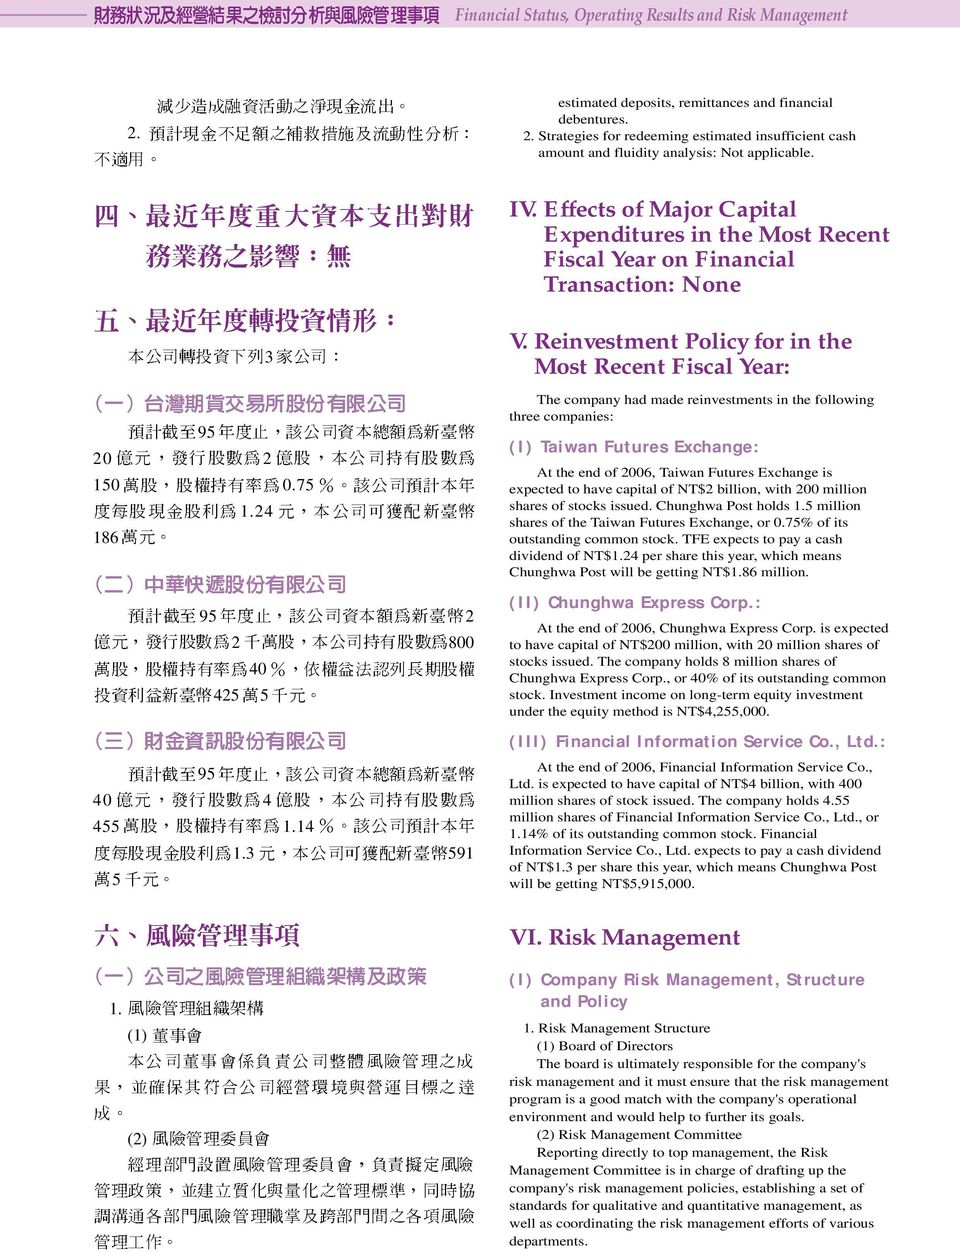 Reinvestment Policy for in the Most Recent Fiscal Year: The company had made reinvestments in the following three companies: (I) Taiwan Futures Exchange: At the end of 2006, Taiwan Futures Exchange